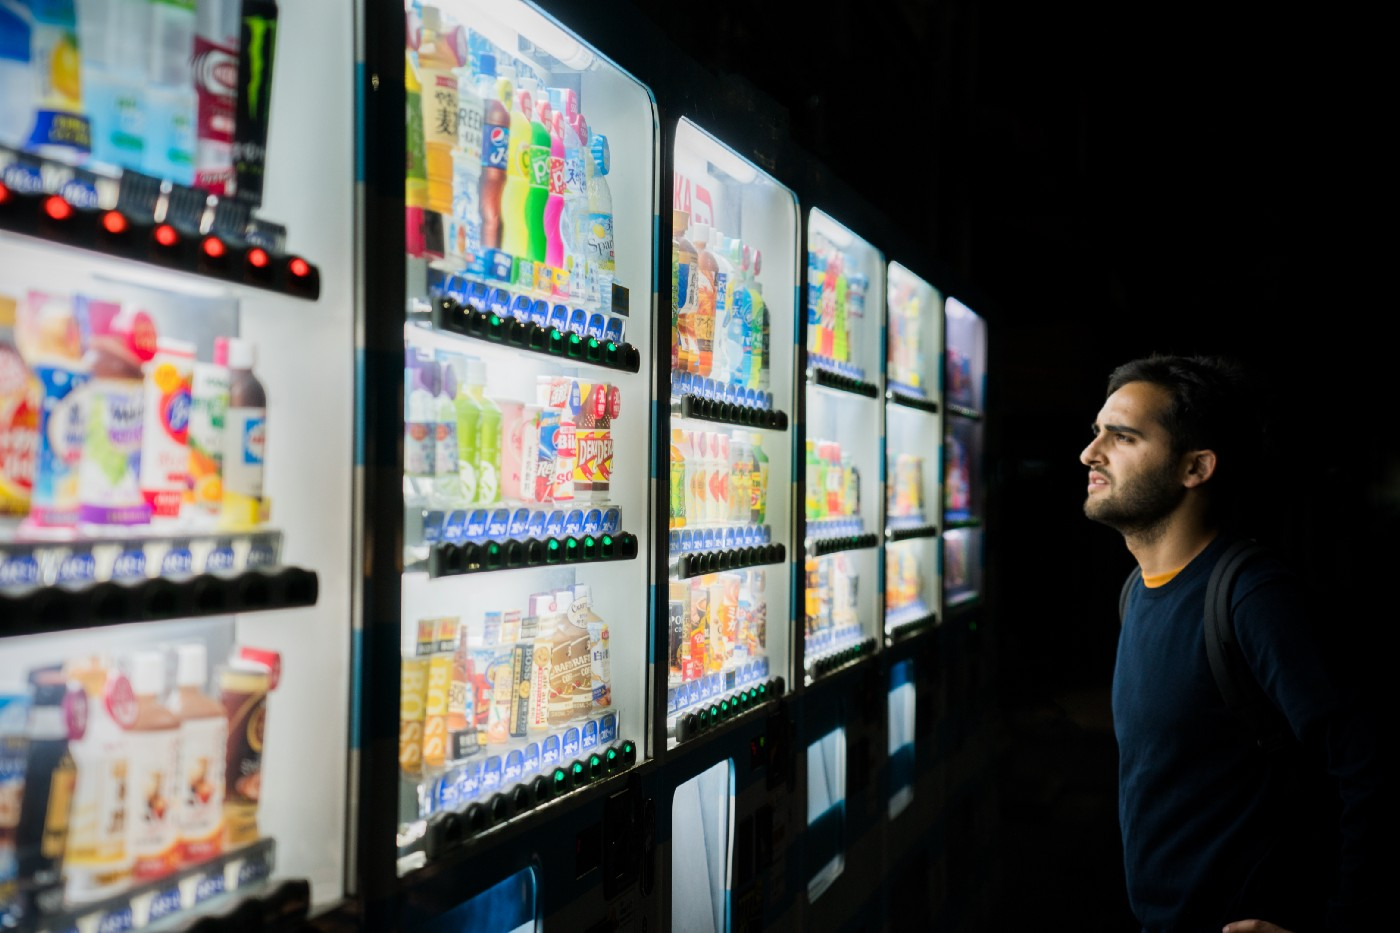 An image of a Human looking at a six panel wide vending machine and looking confused about what choice to make.